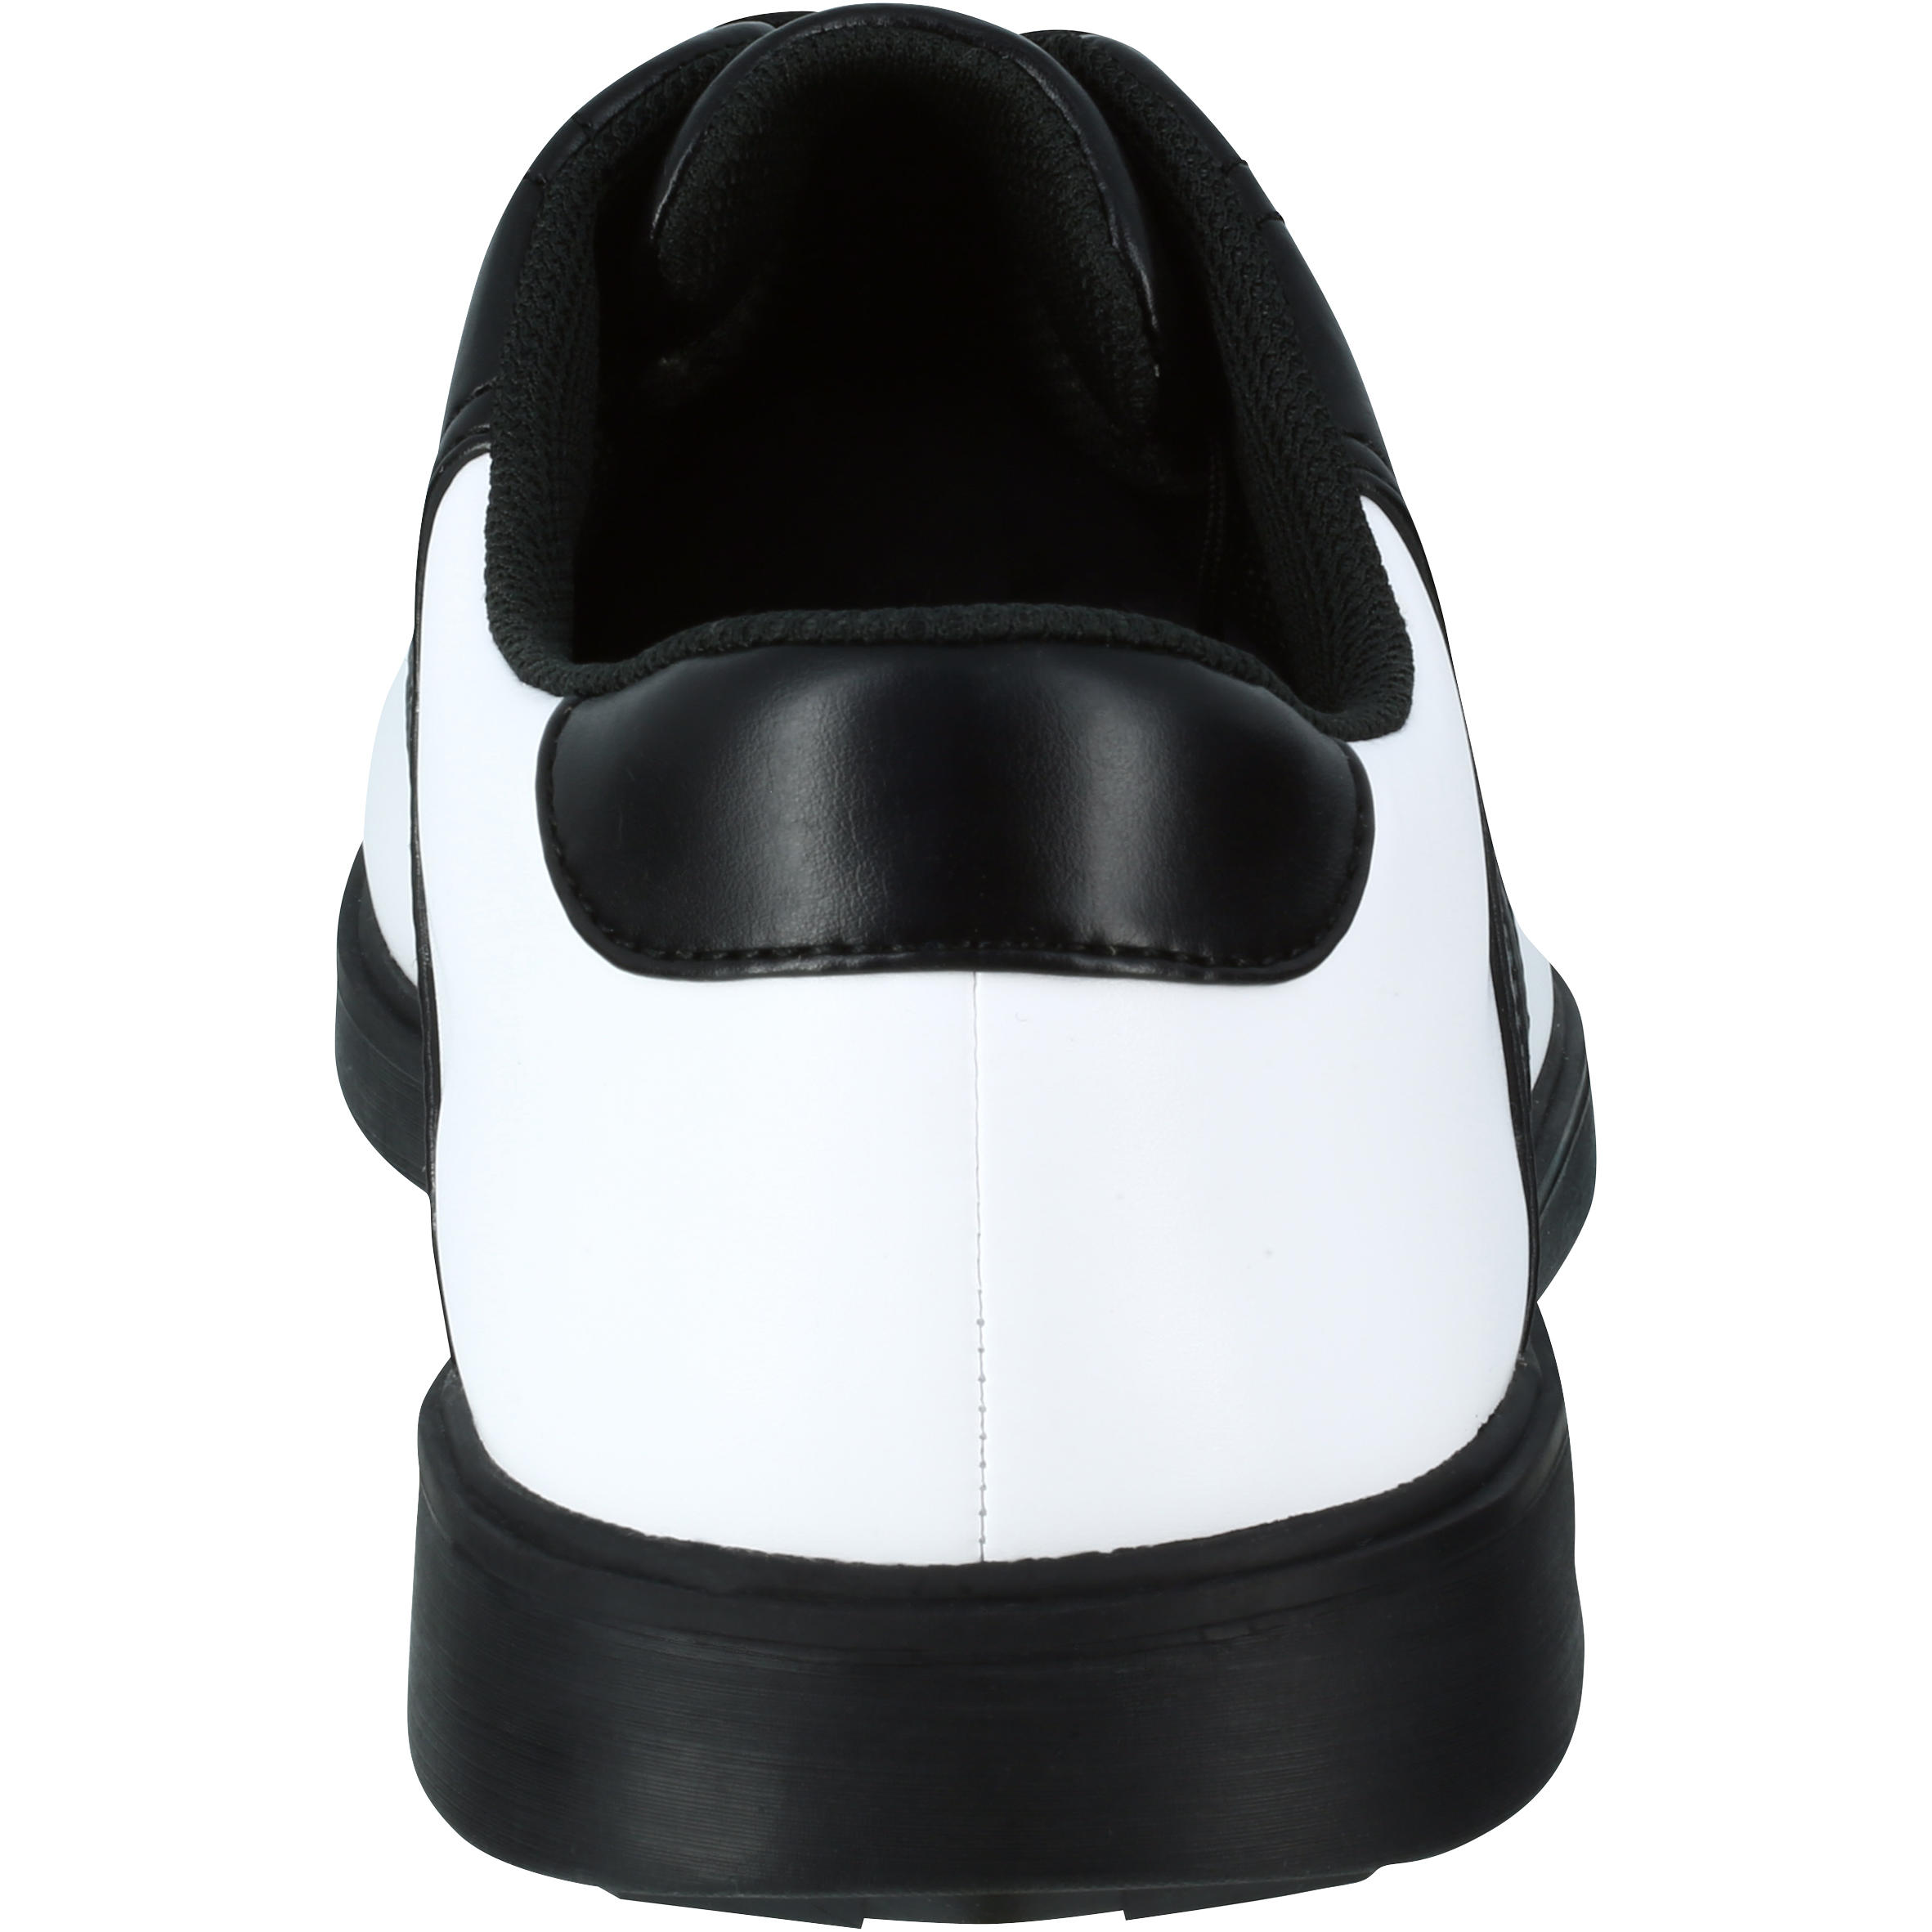 Men's Spike 500 Golf Shoes